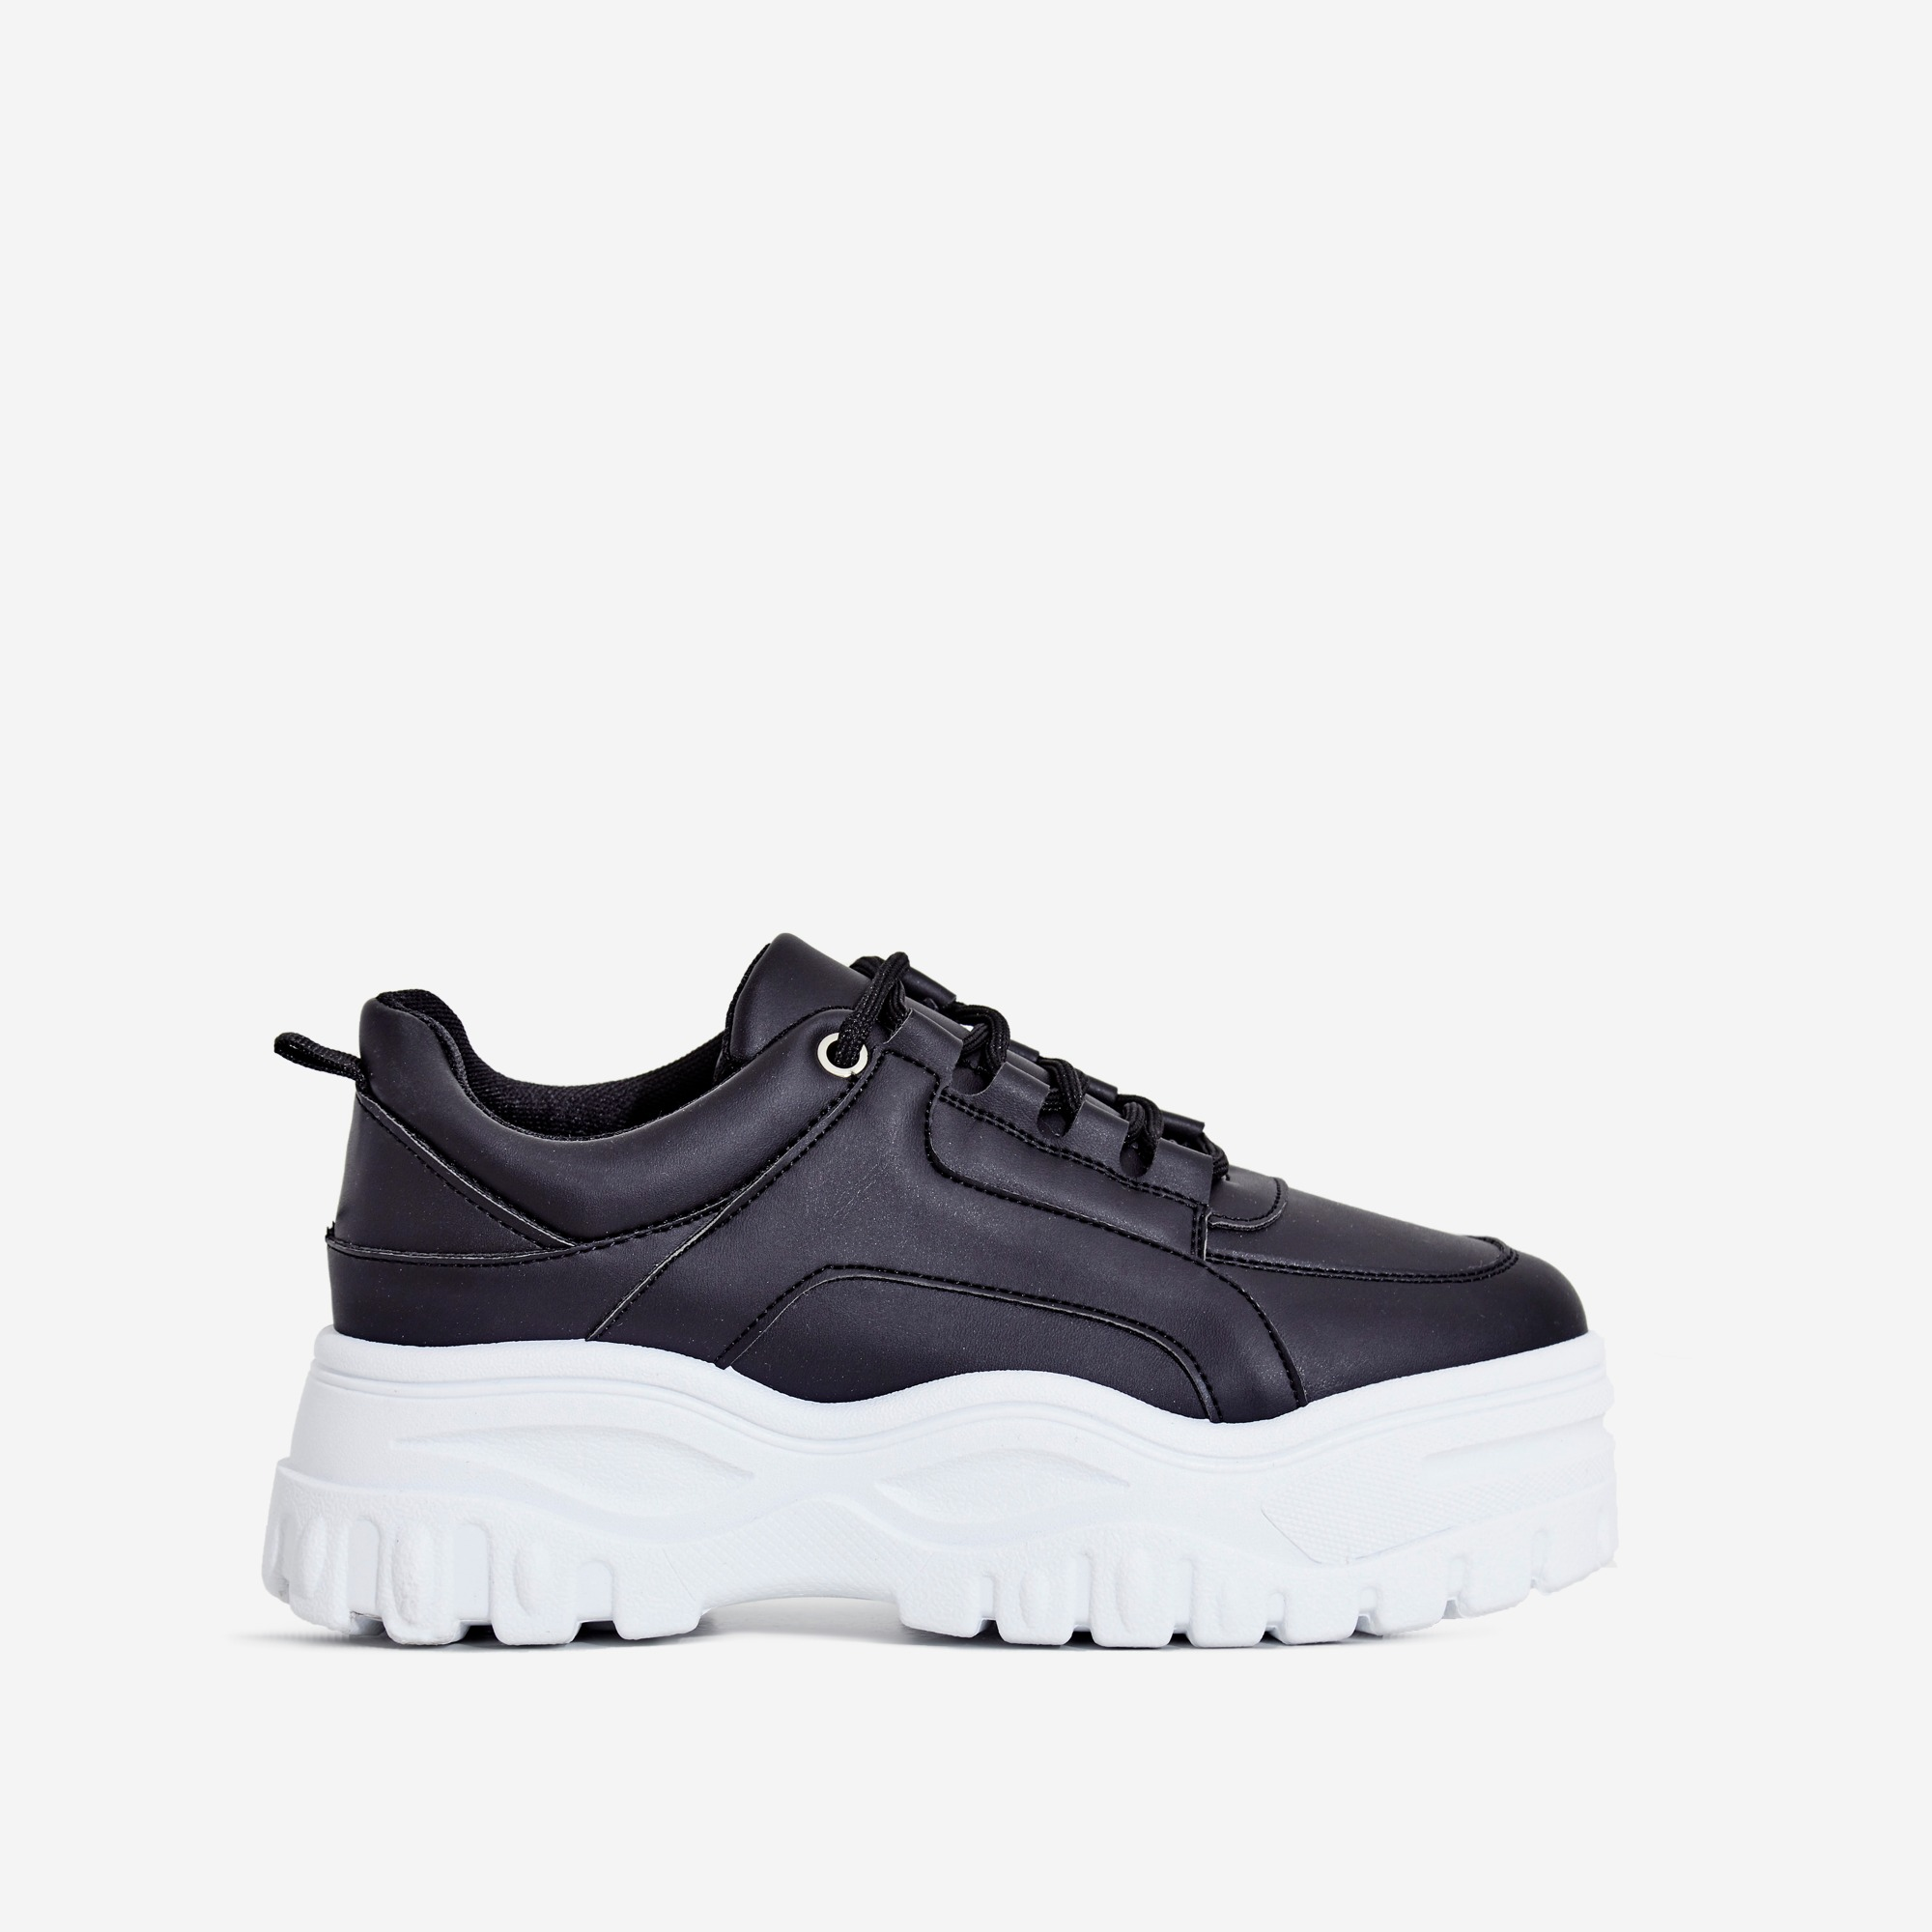 003a21d33ce Tye Chunky Sole Trainer In Black